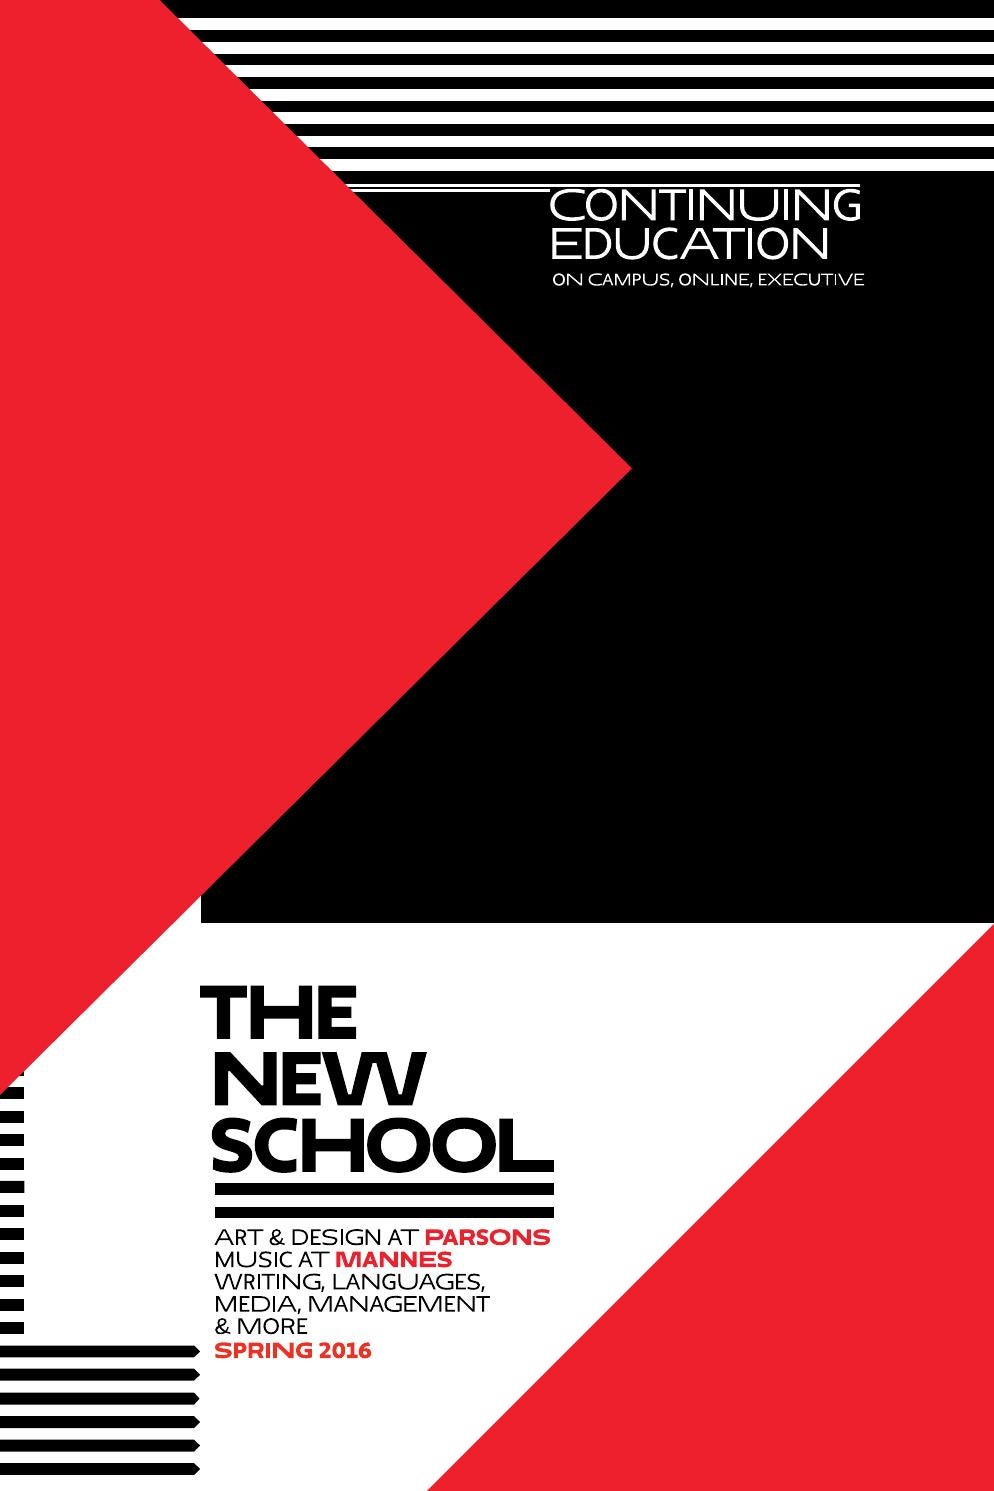 Continuing Education Spring 2016 The New School By The New School Issuu